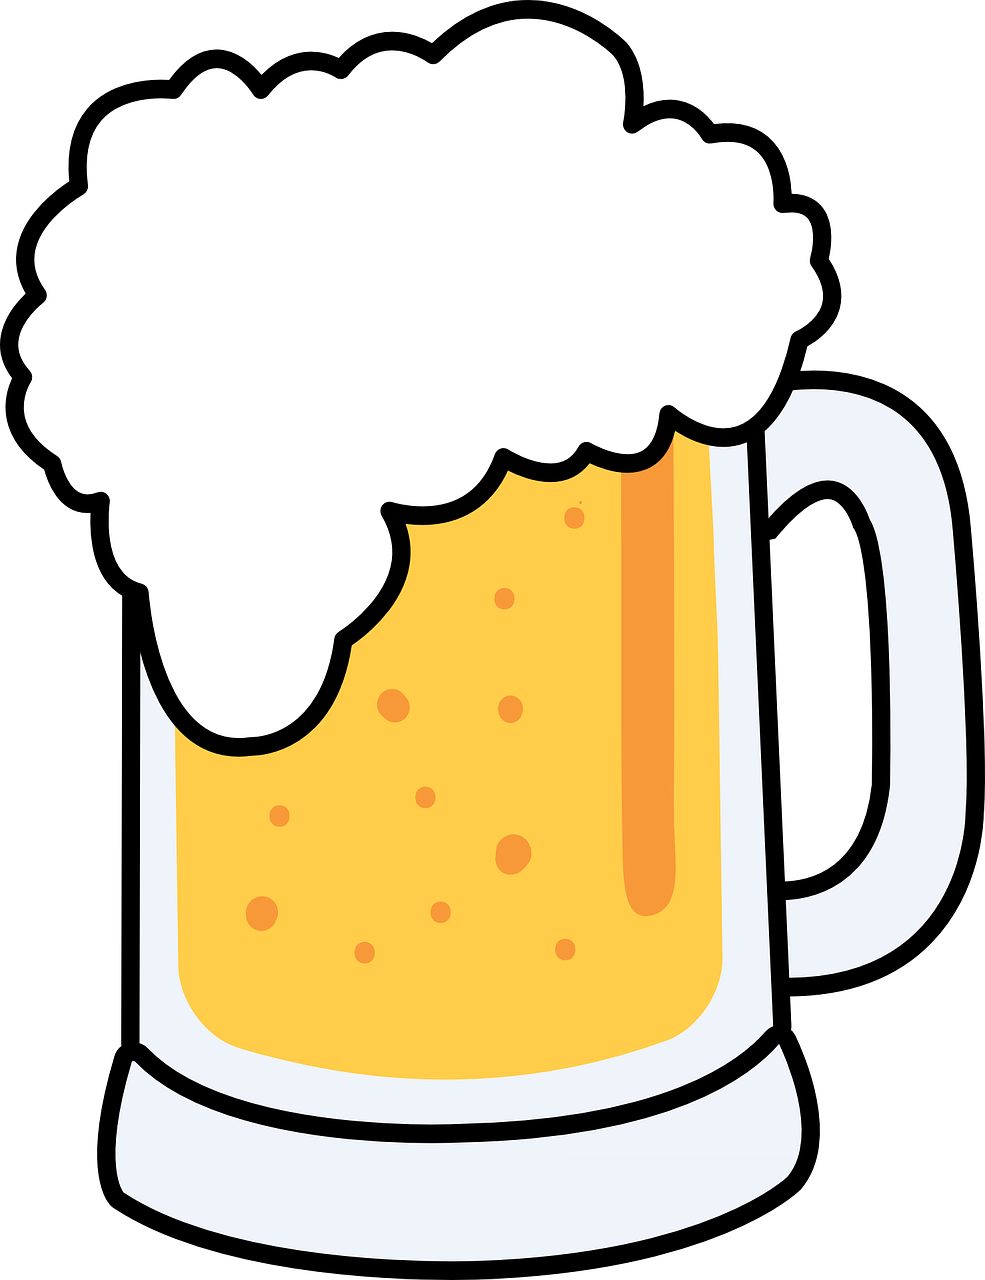 Beer Clip Art Free Download | Clipart Panda - Free Clipart ...